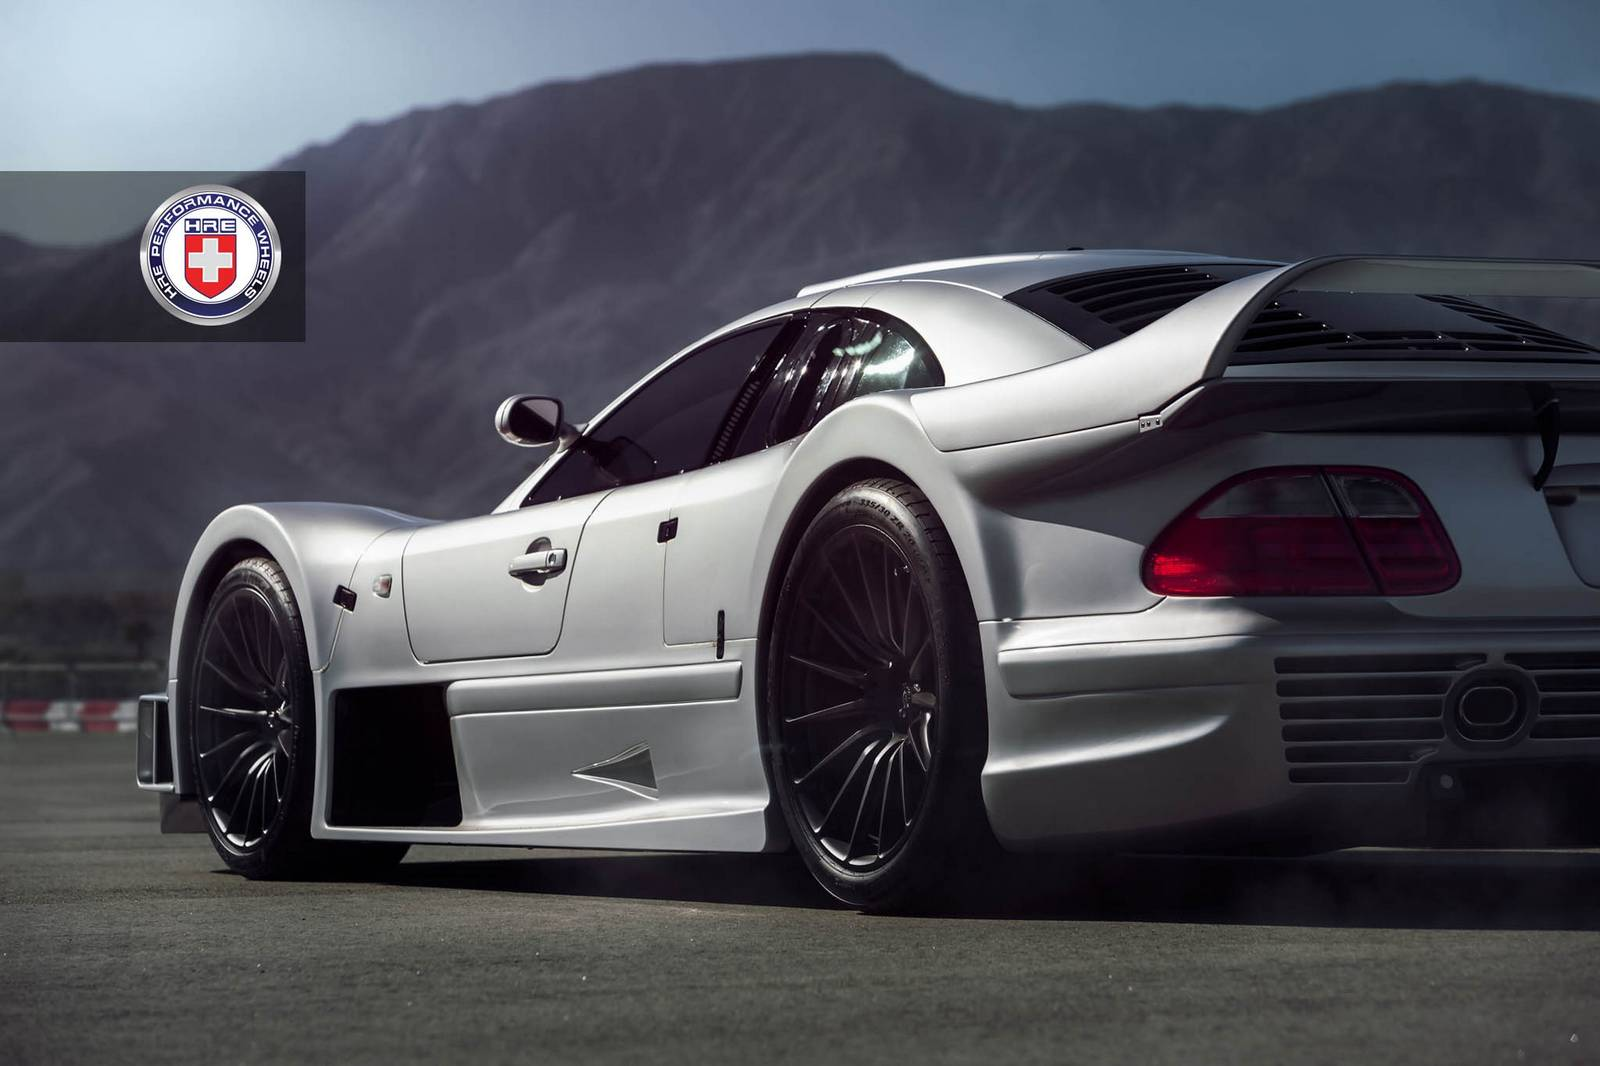 Stunning mercedes benz clk gtr with satin black hre wheels for Mercedes benz small car